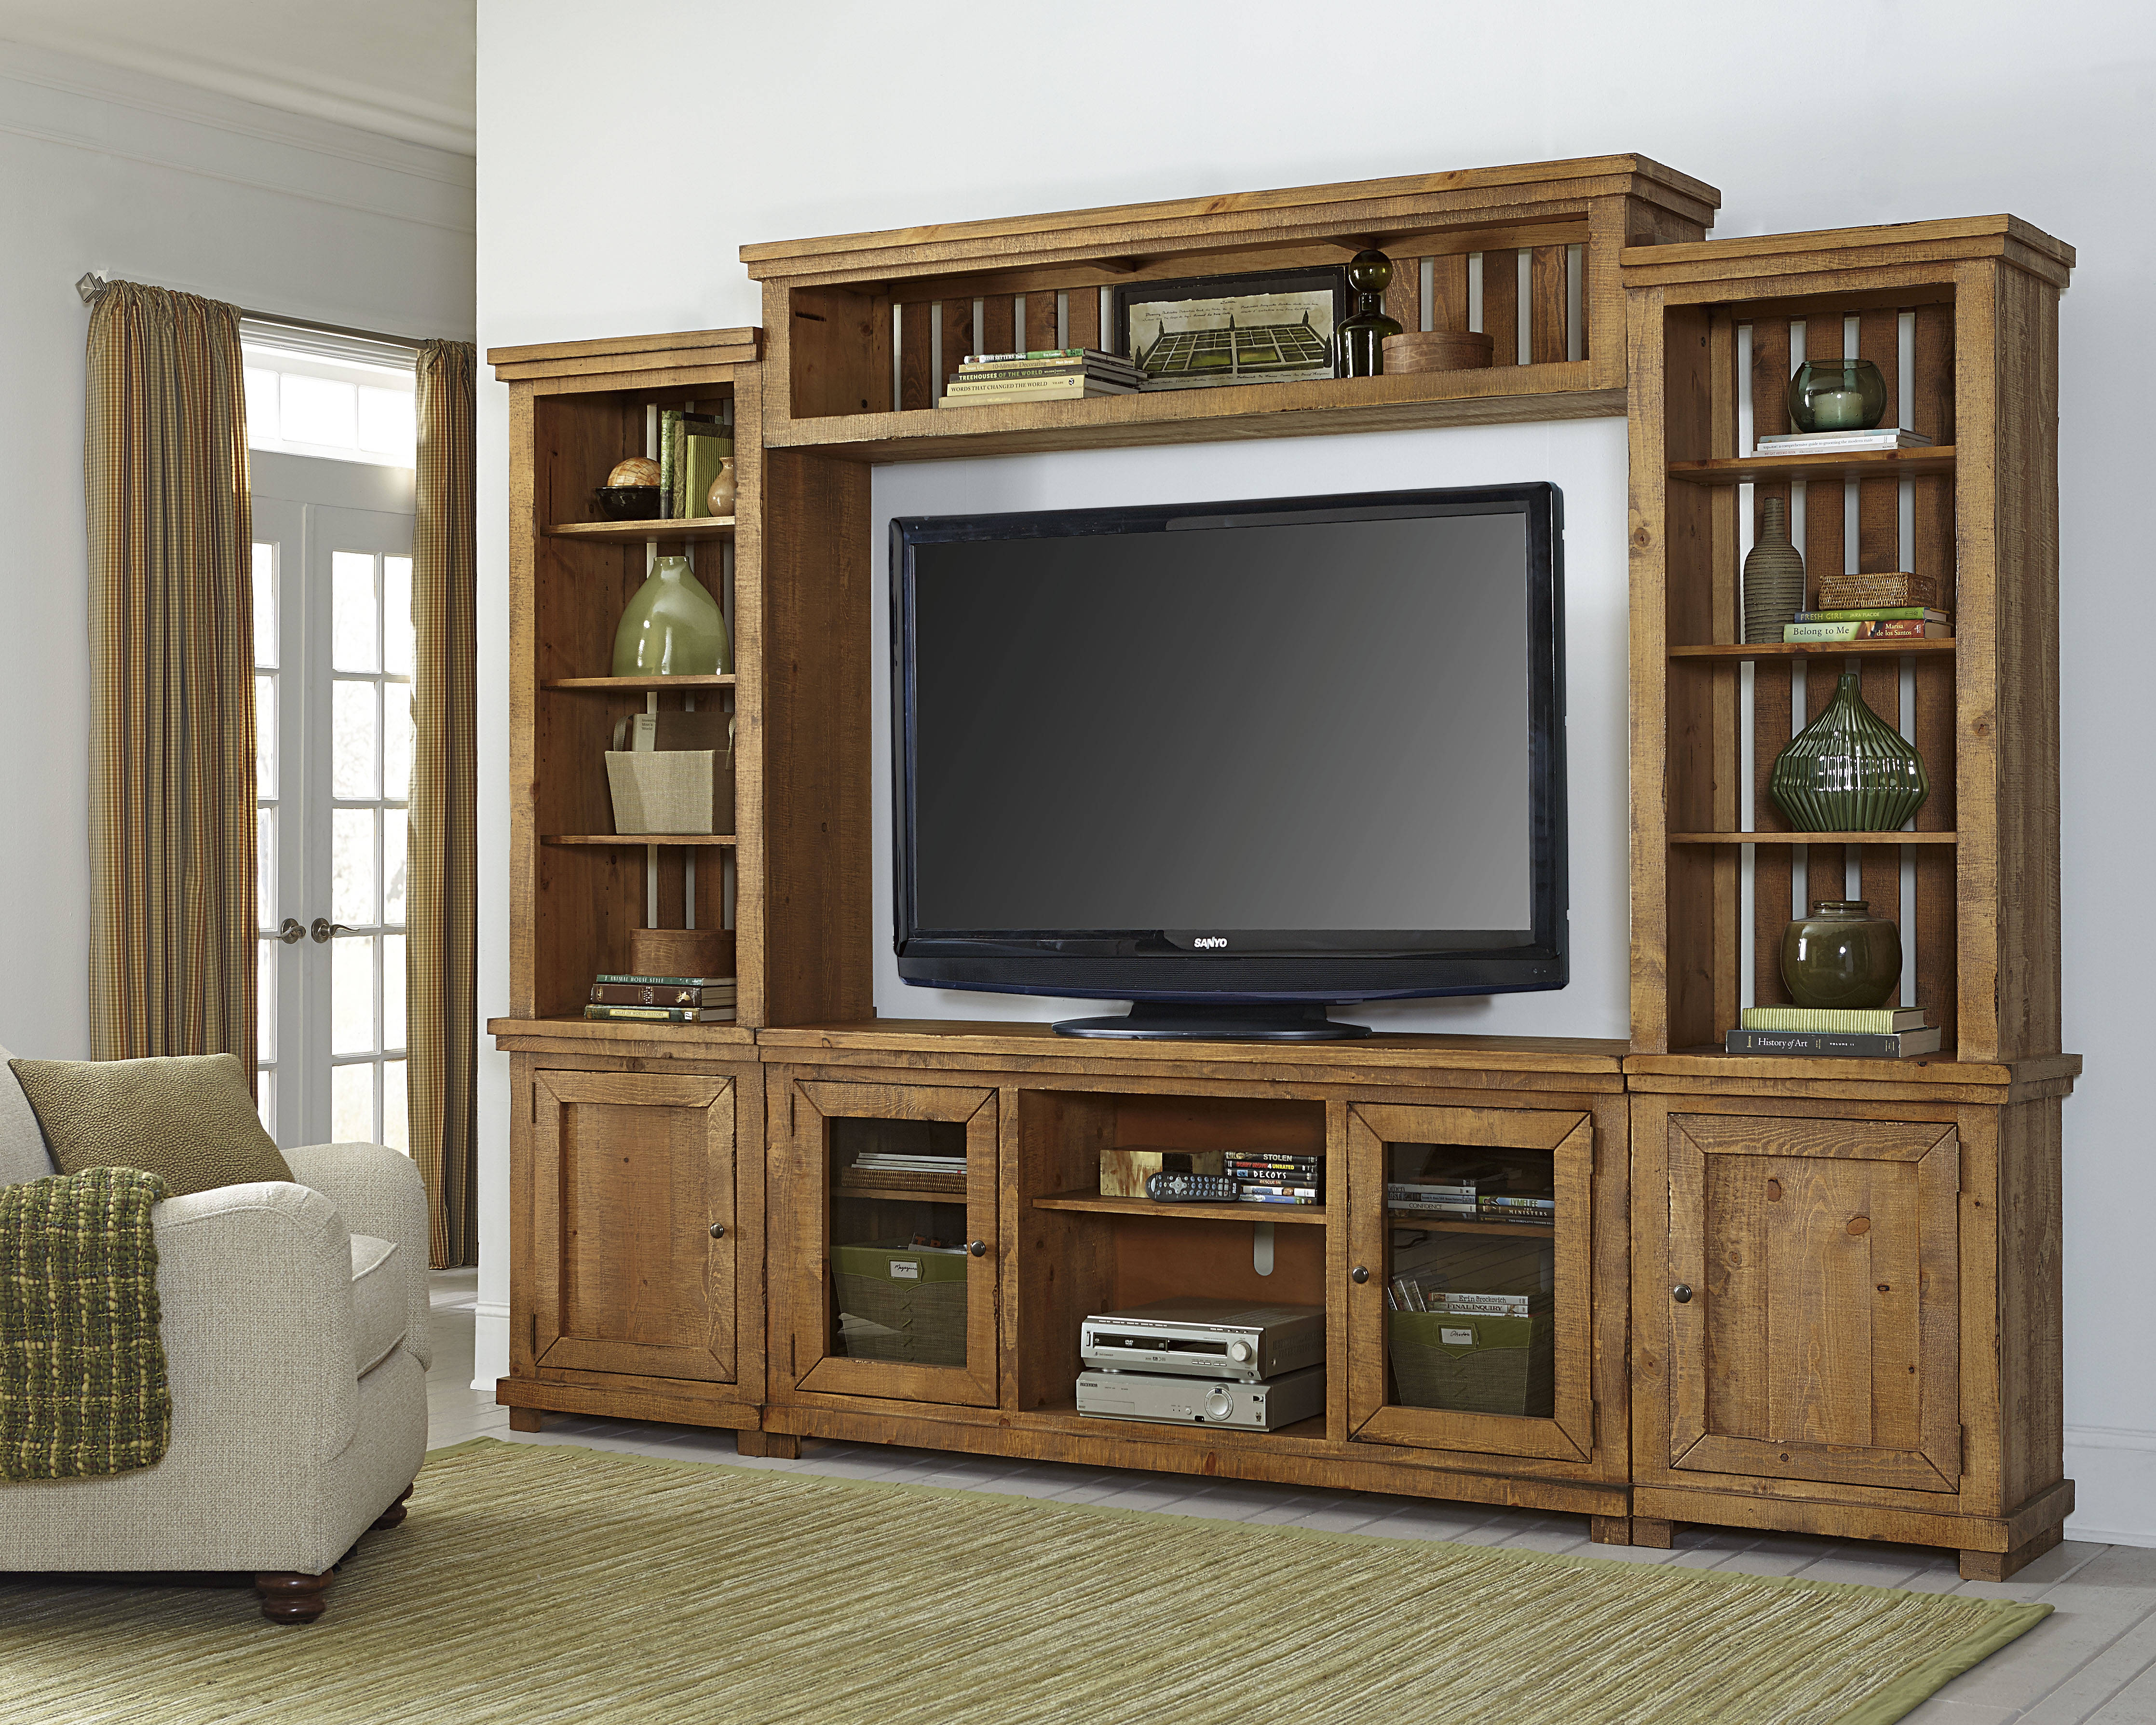 Progressive Furniture Willow Distressed Pine Wall Unit With Tv Stand Click To Enlarge